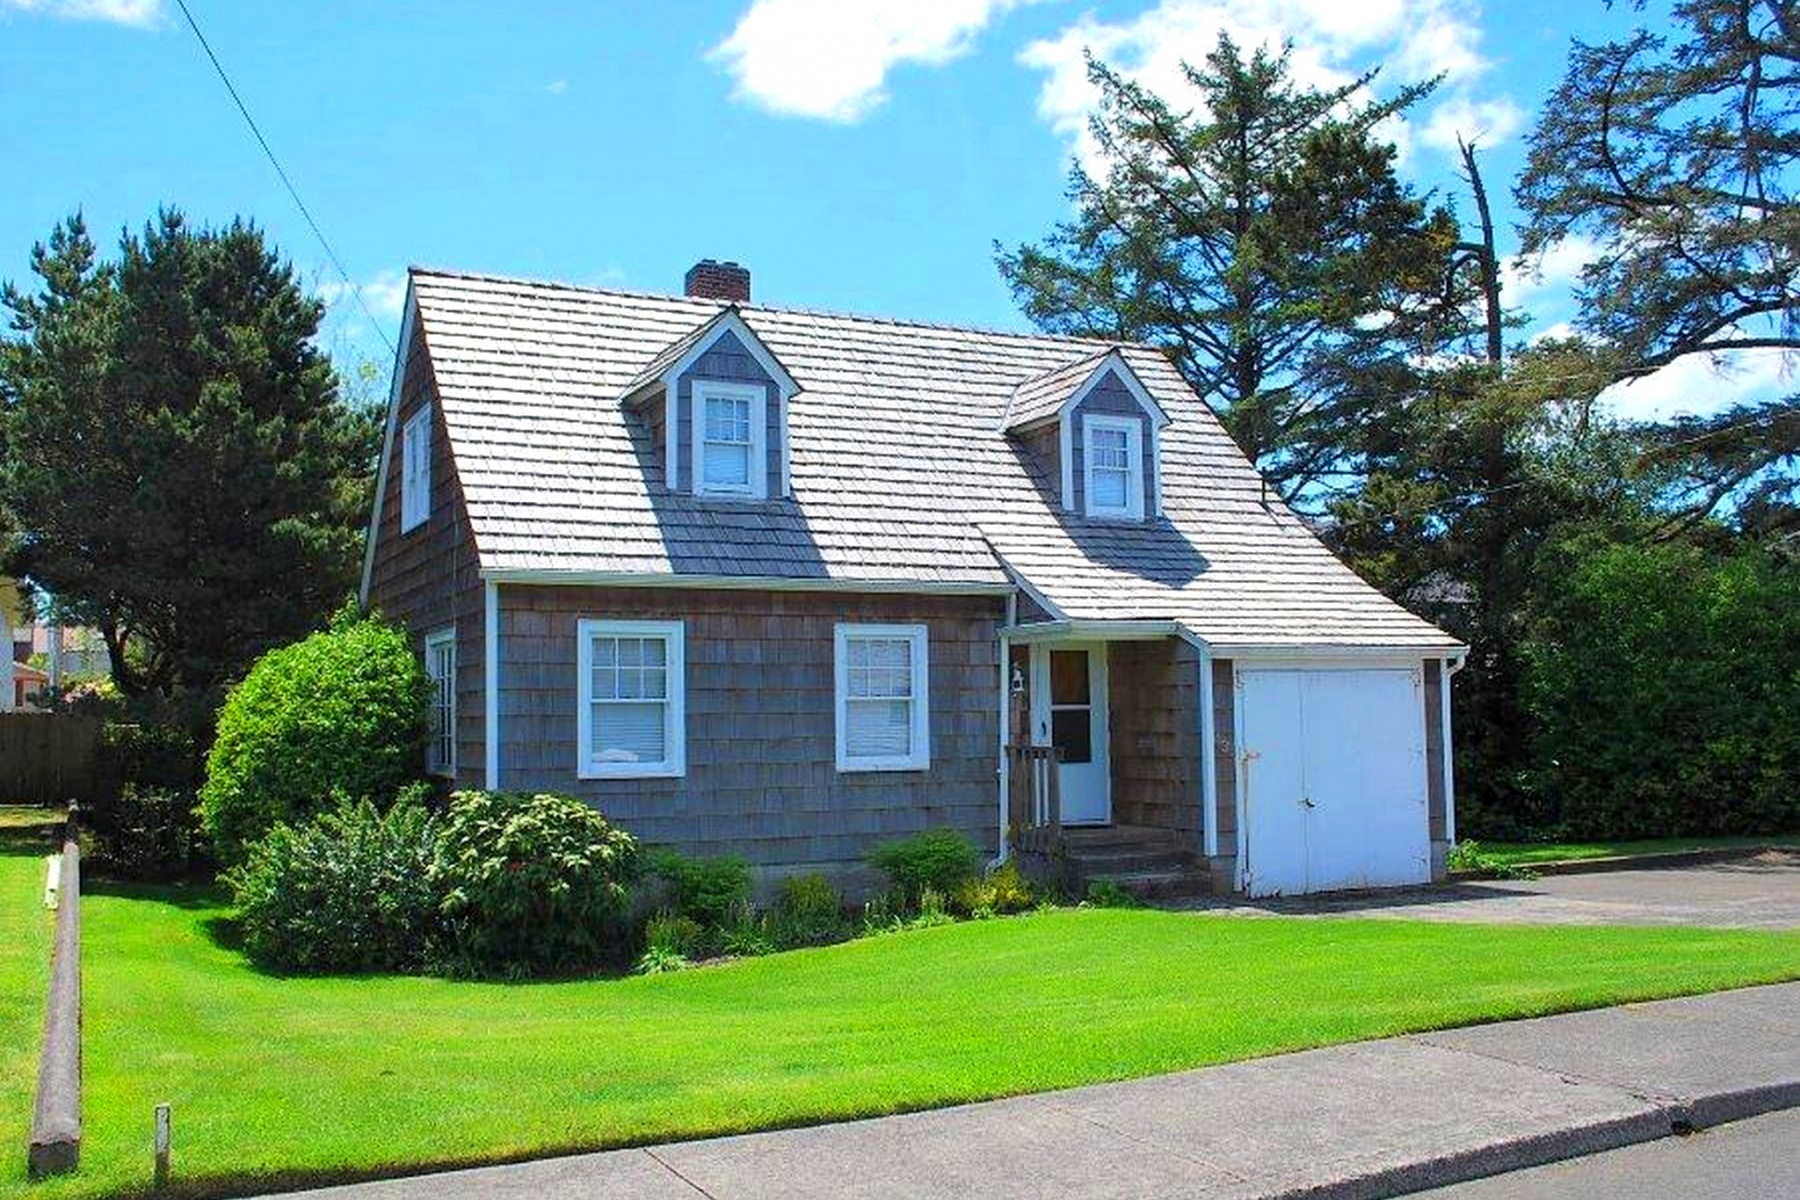 Single Family Home for Sale at 435 4th AVE, SEASIDE Seaside, Oregon, 97138 United States